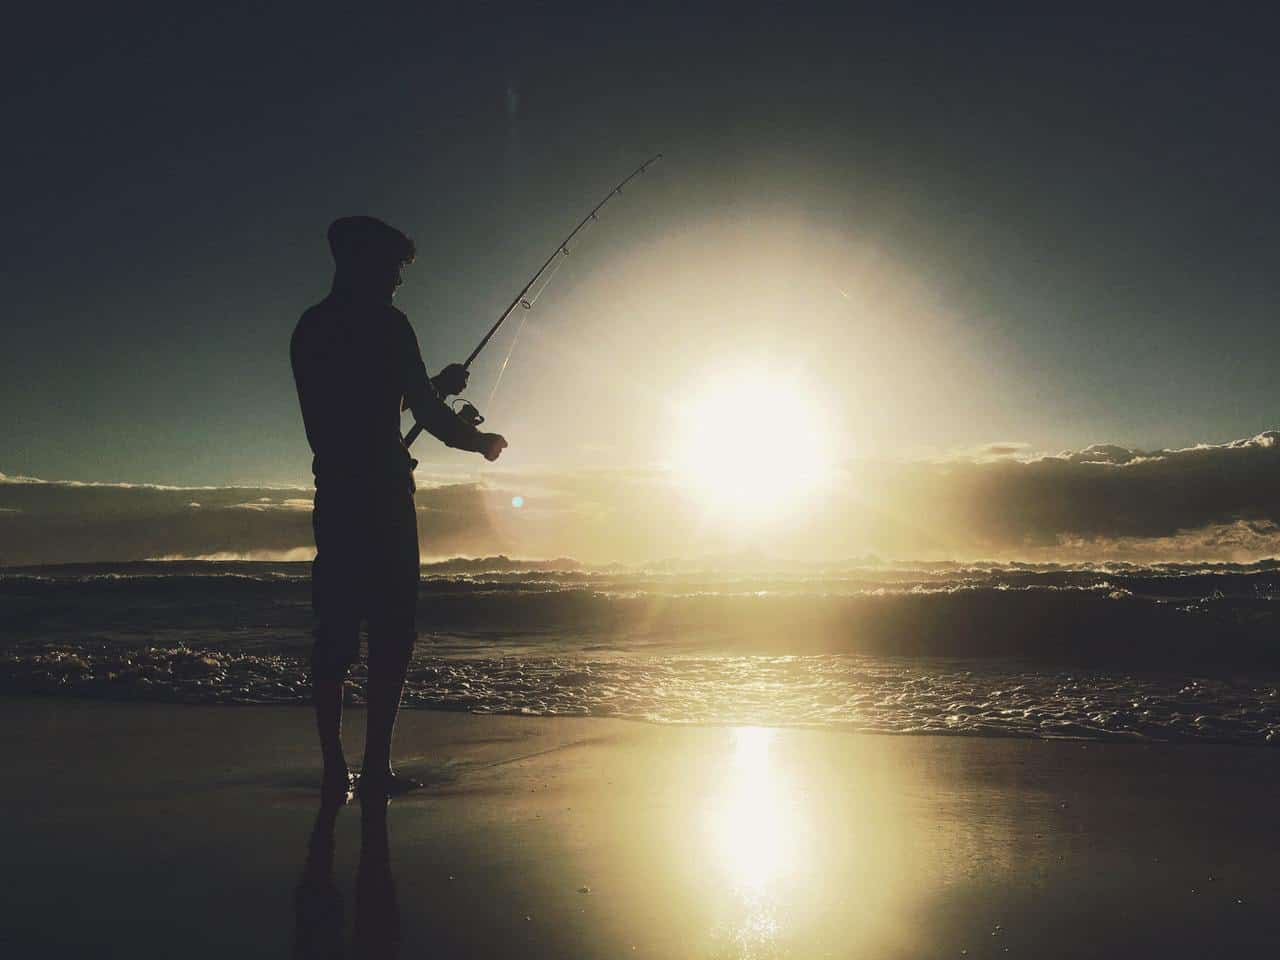 Man fishing on sandy beach with glare of white light in front of him - Inquire deeply